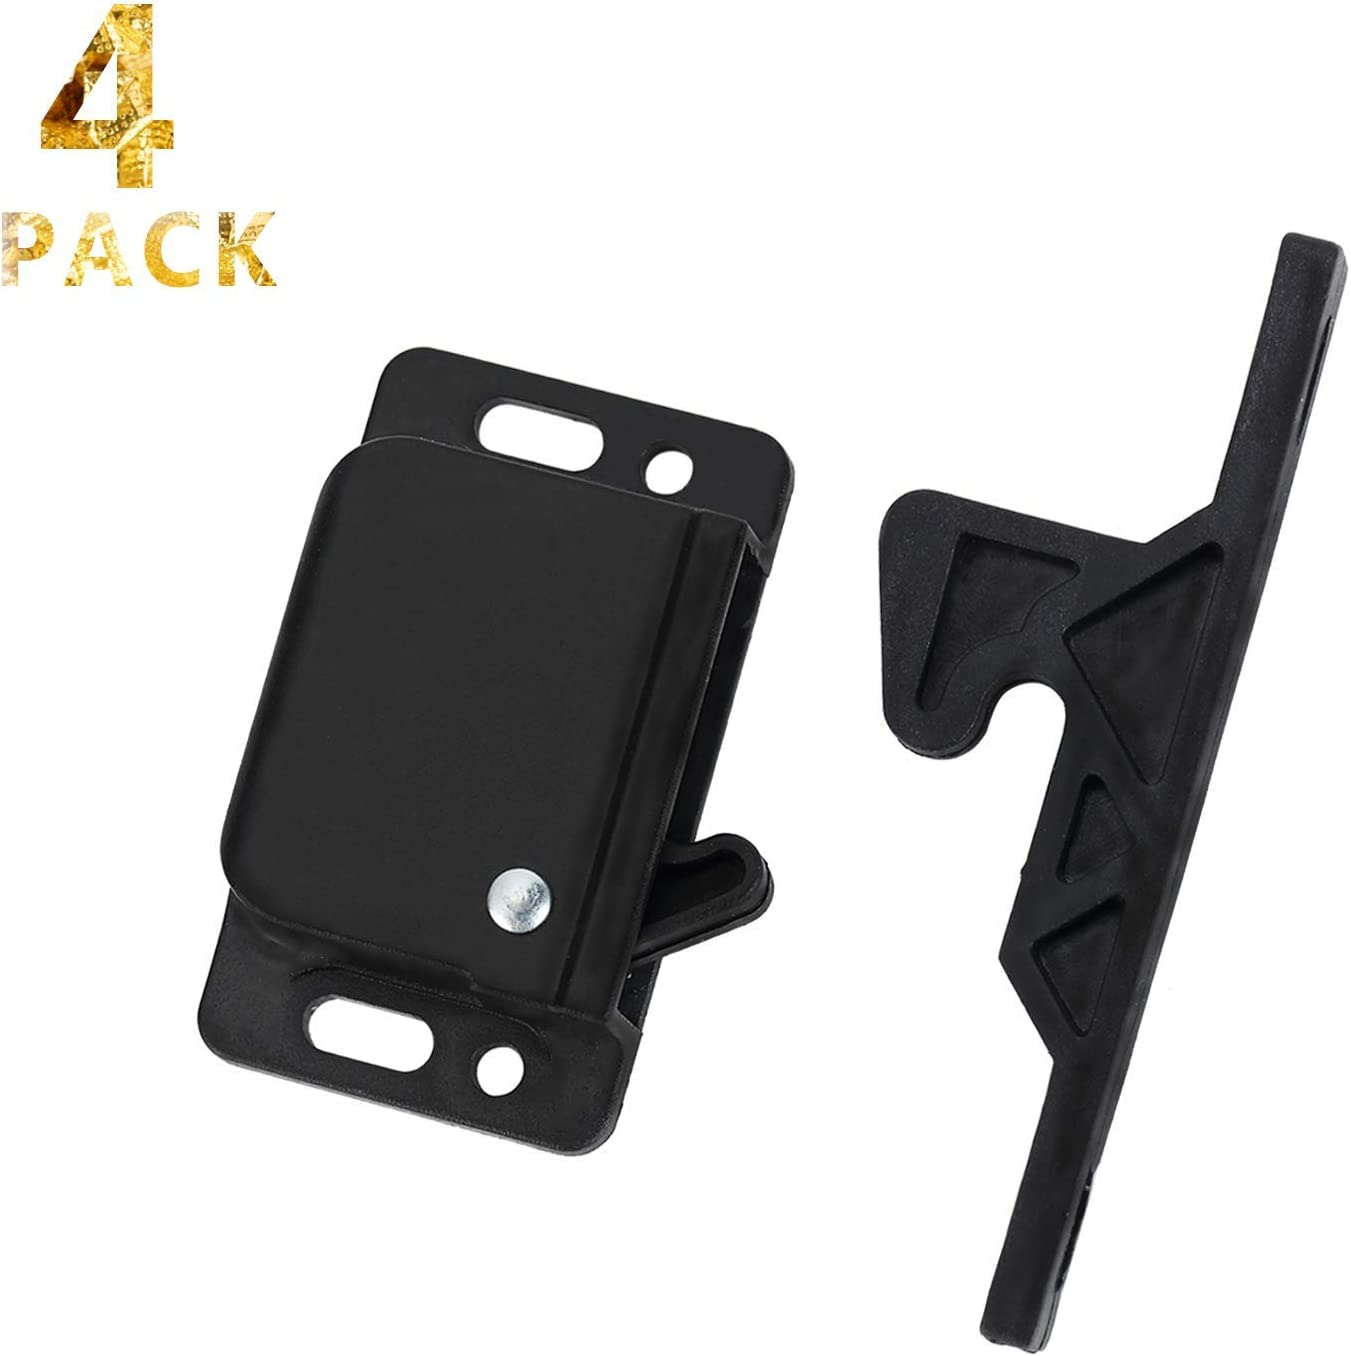 4 Pack Cabinet Door Latch/RV Drawer Latch Holder, 8 LB Pull Force Latch for Home/Office/Cabinet Doors, Push Catch Latch for RV, Camper, Motor, Home, Trailer with Mounting Screws, OEM Replacement